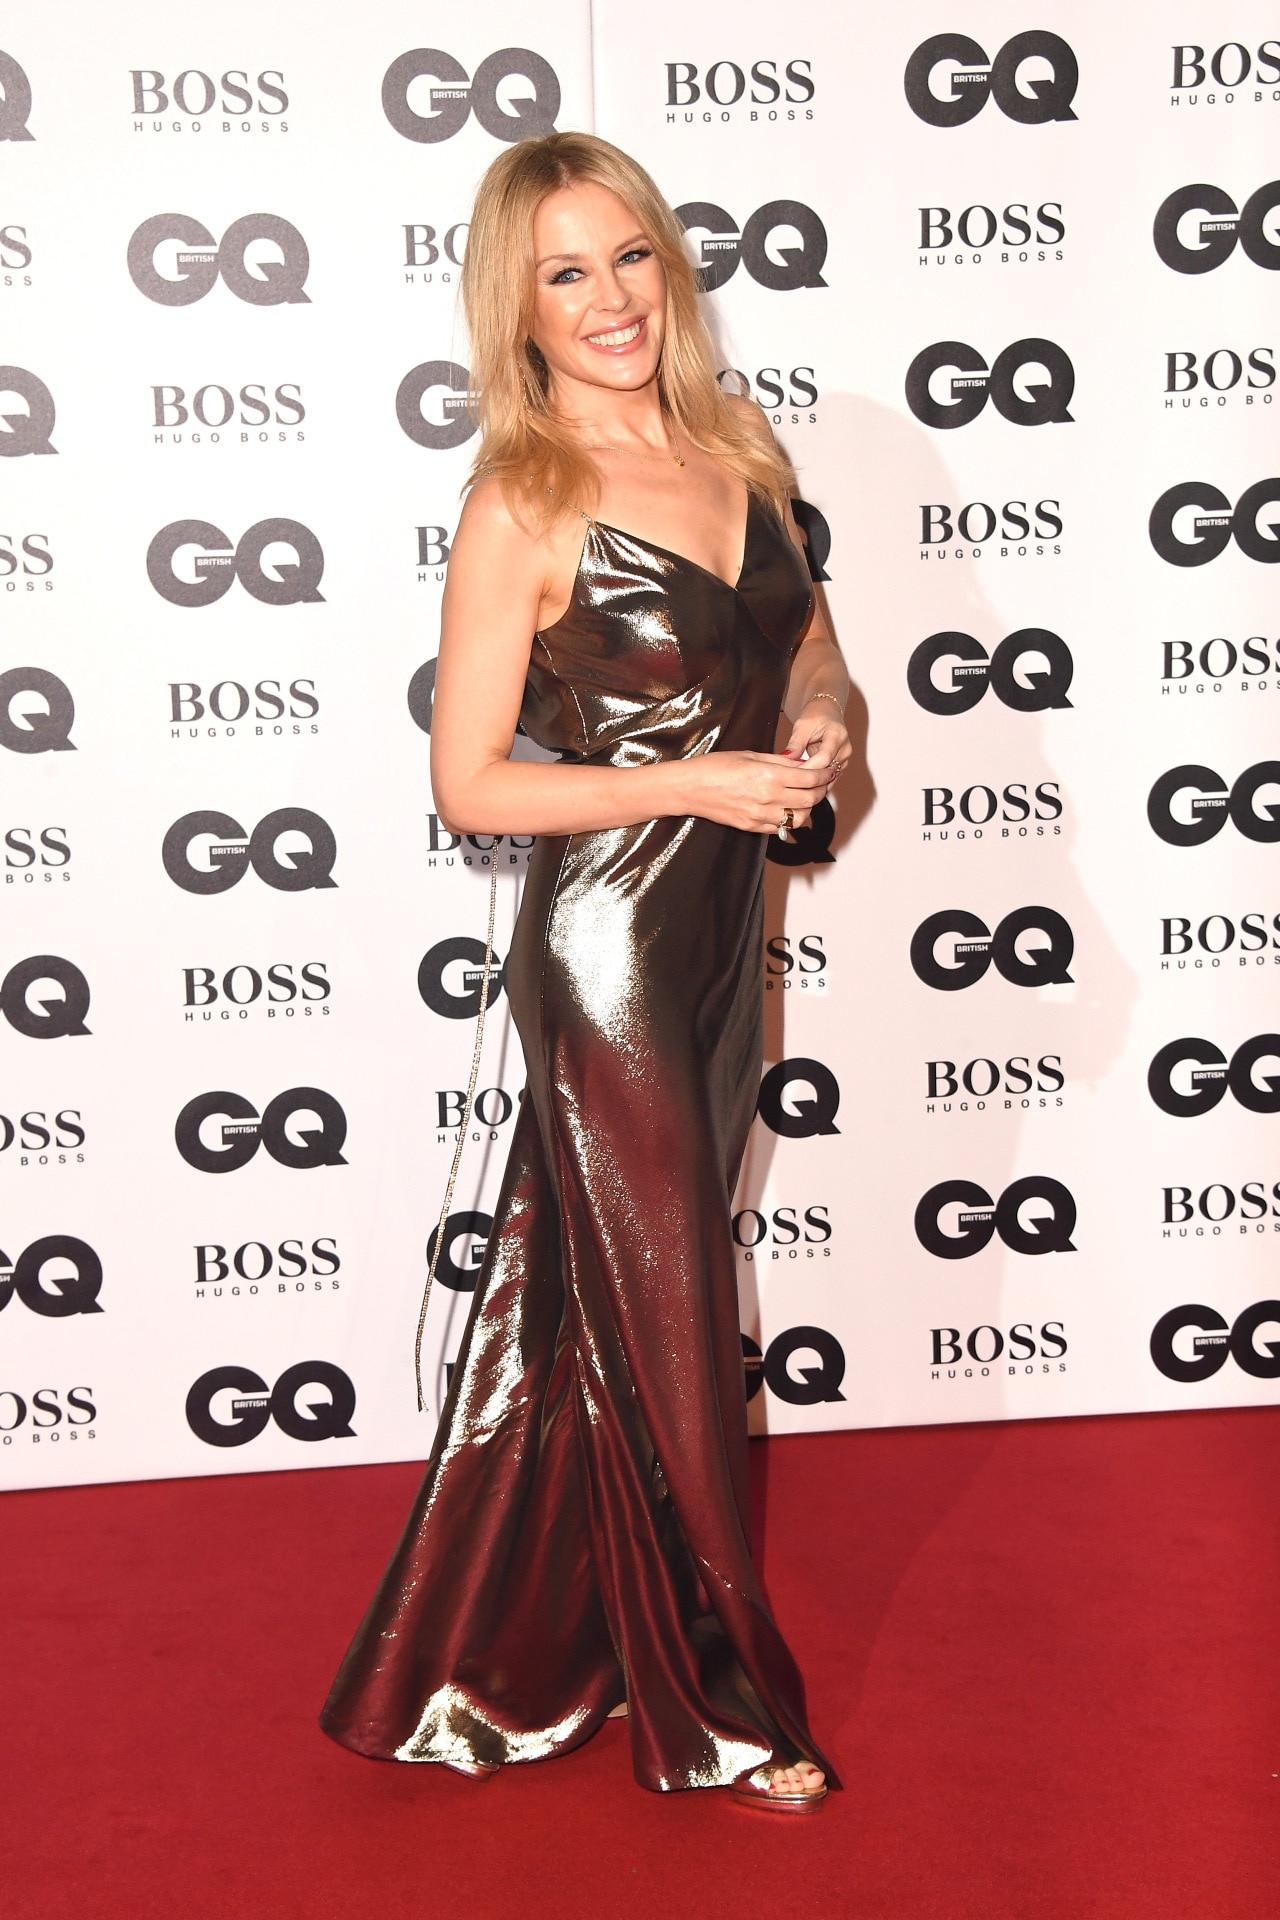 Kylie Minogue at the GQ Men of the Year awards in London. Image credit: Getty Images